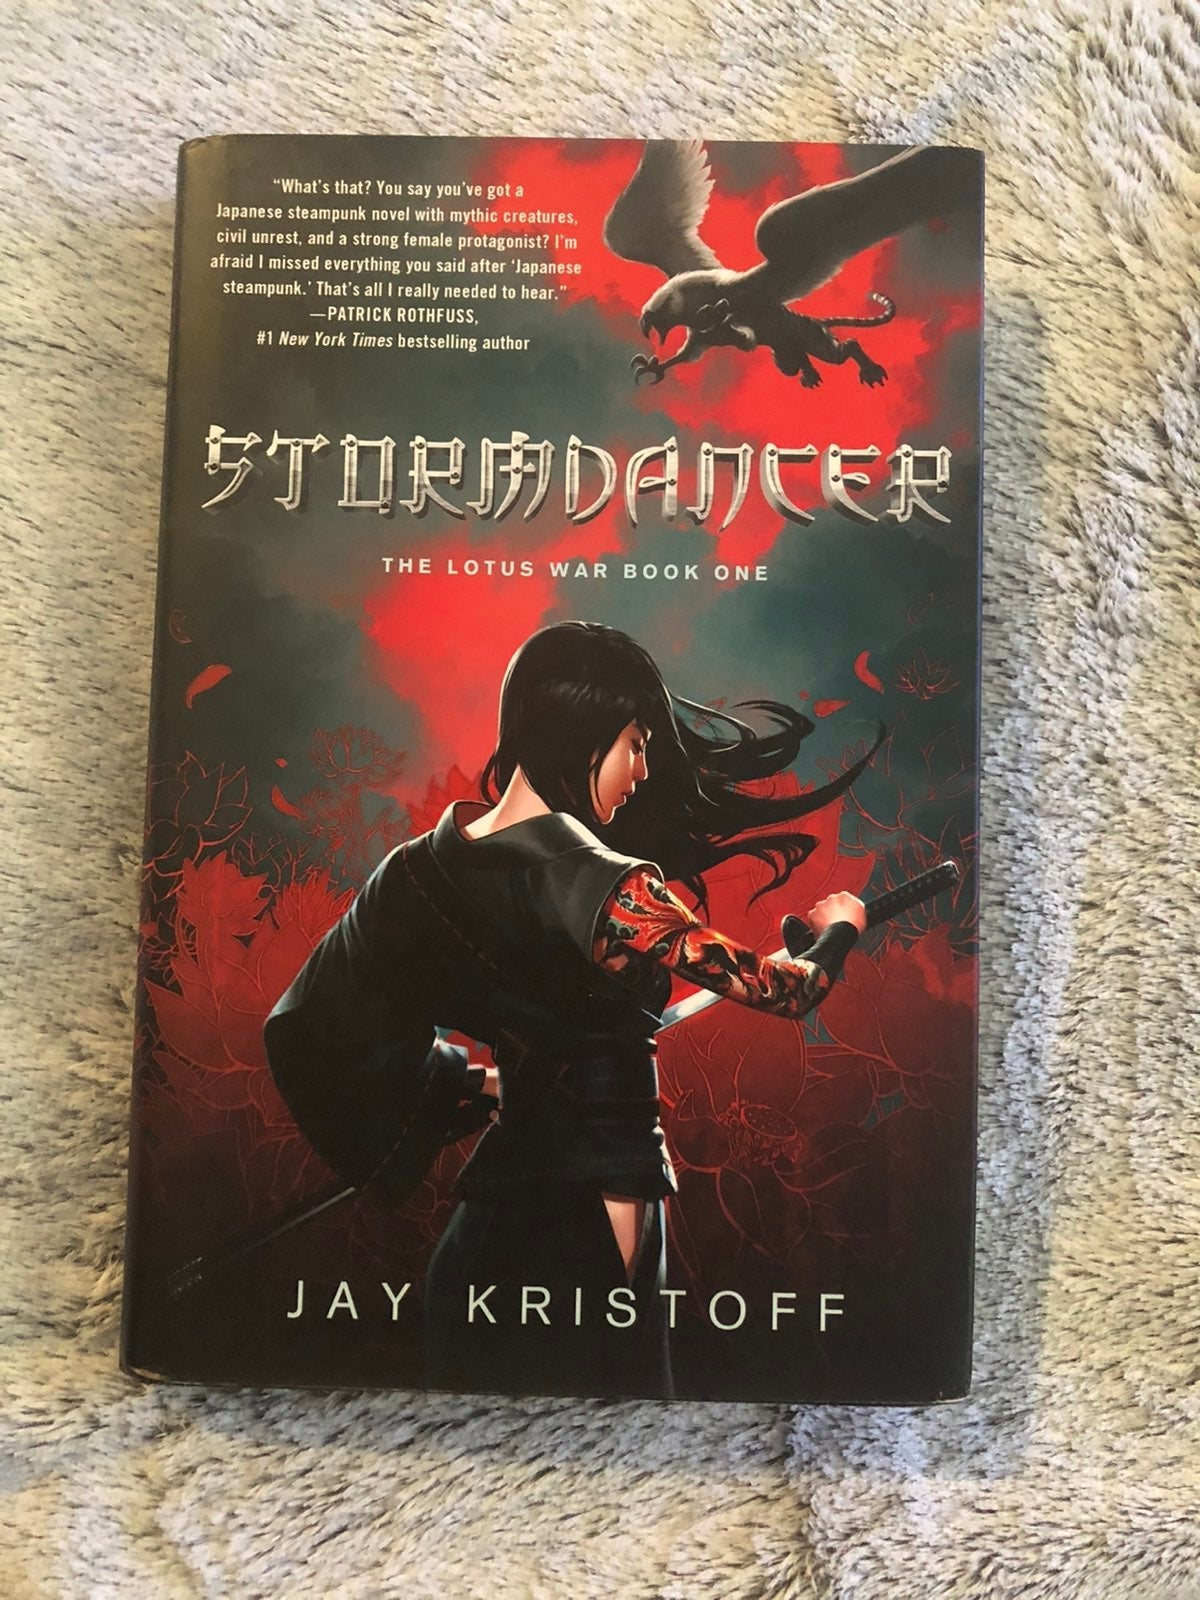 Out of Print HC Stormdancer Signed Krist